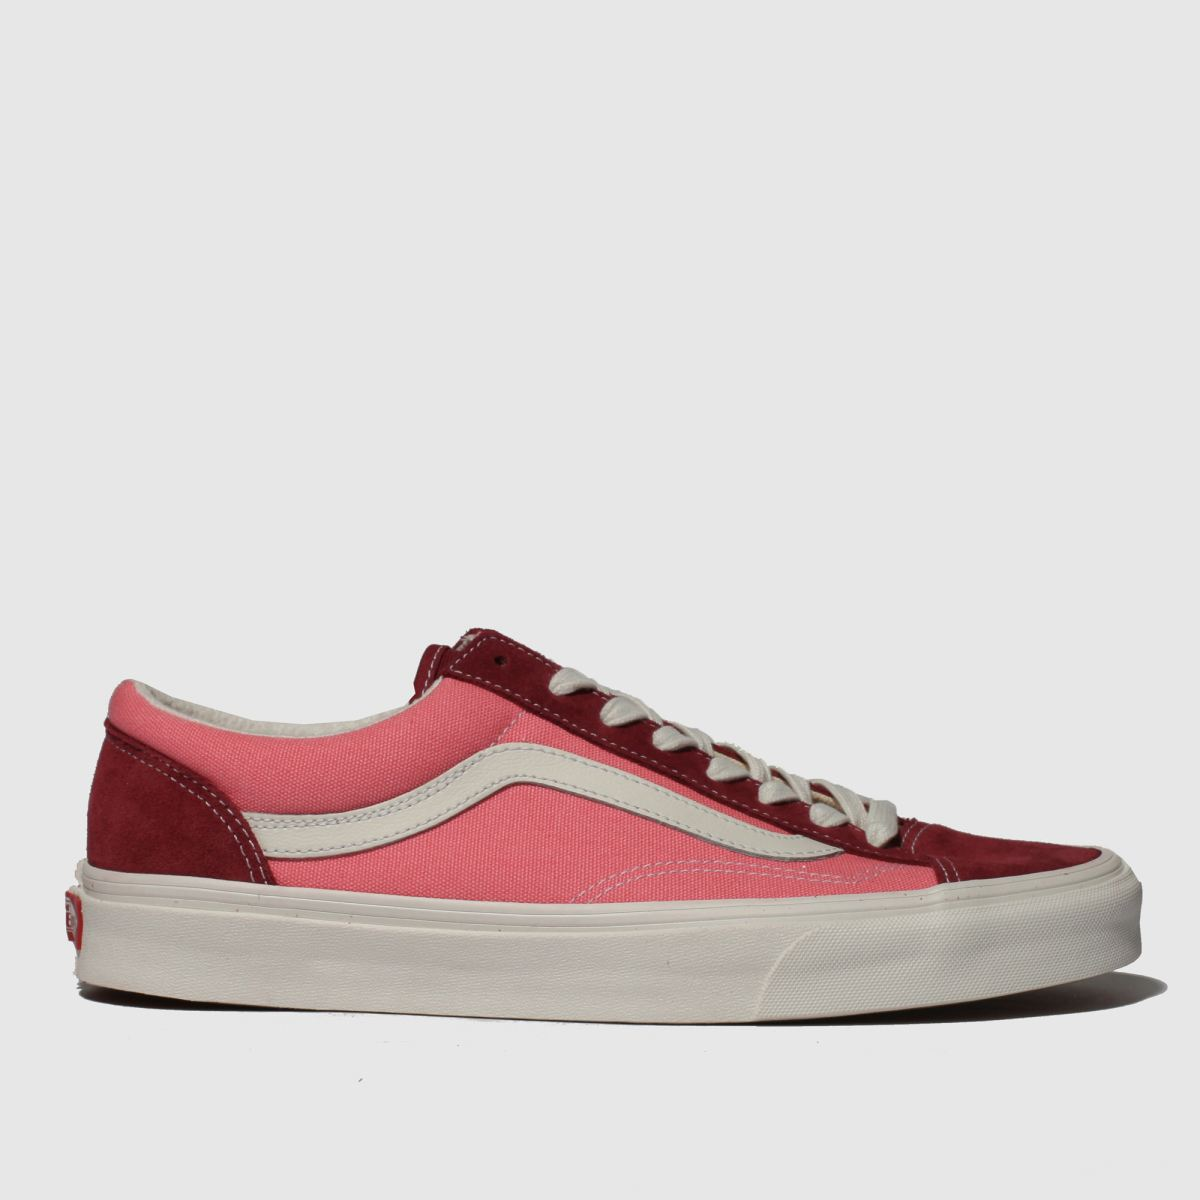 Vans Pink Style 36 Trainers